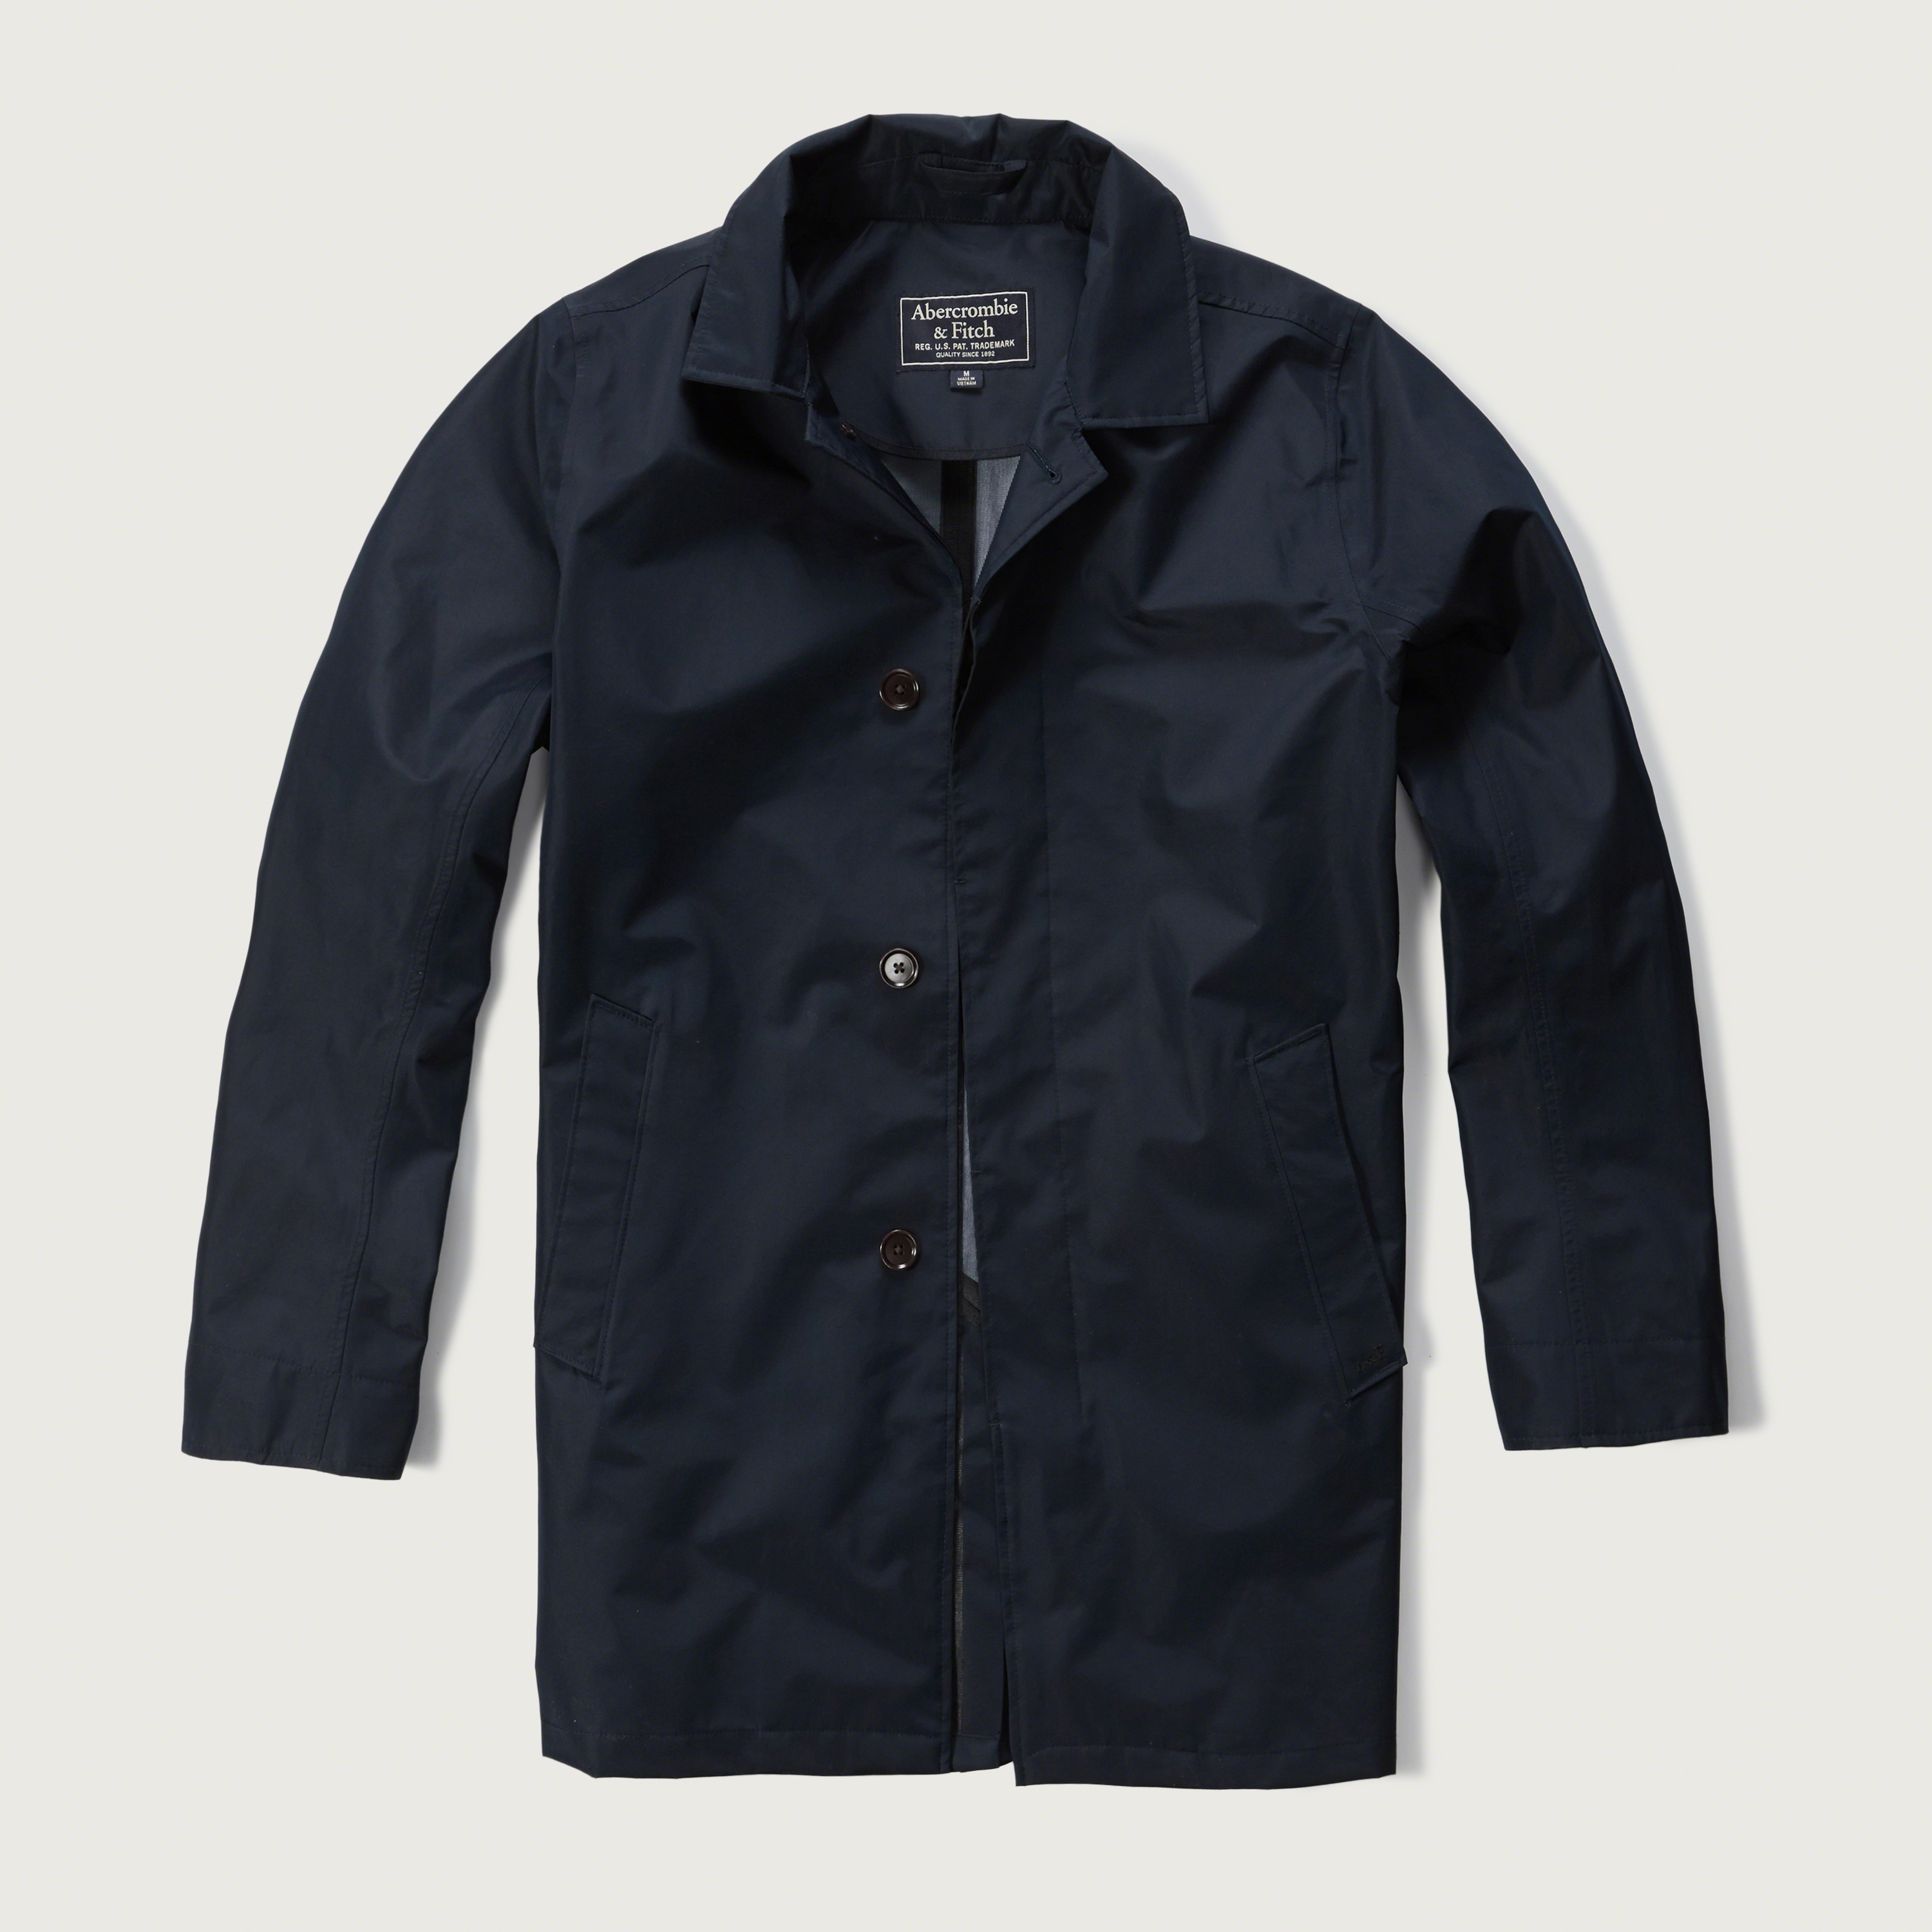 Abercrombie & Fitch Classic Rain Jacket In Blue For Men